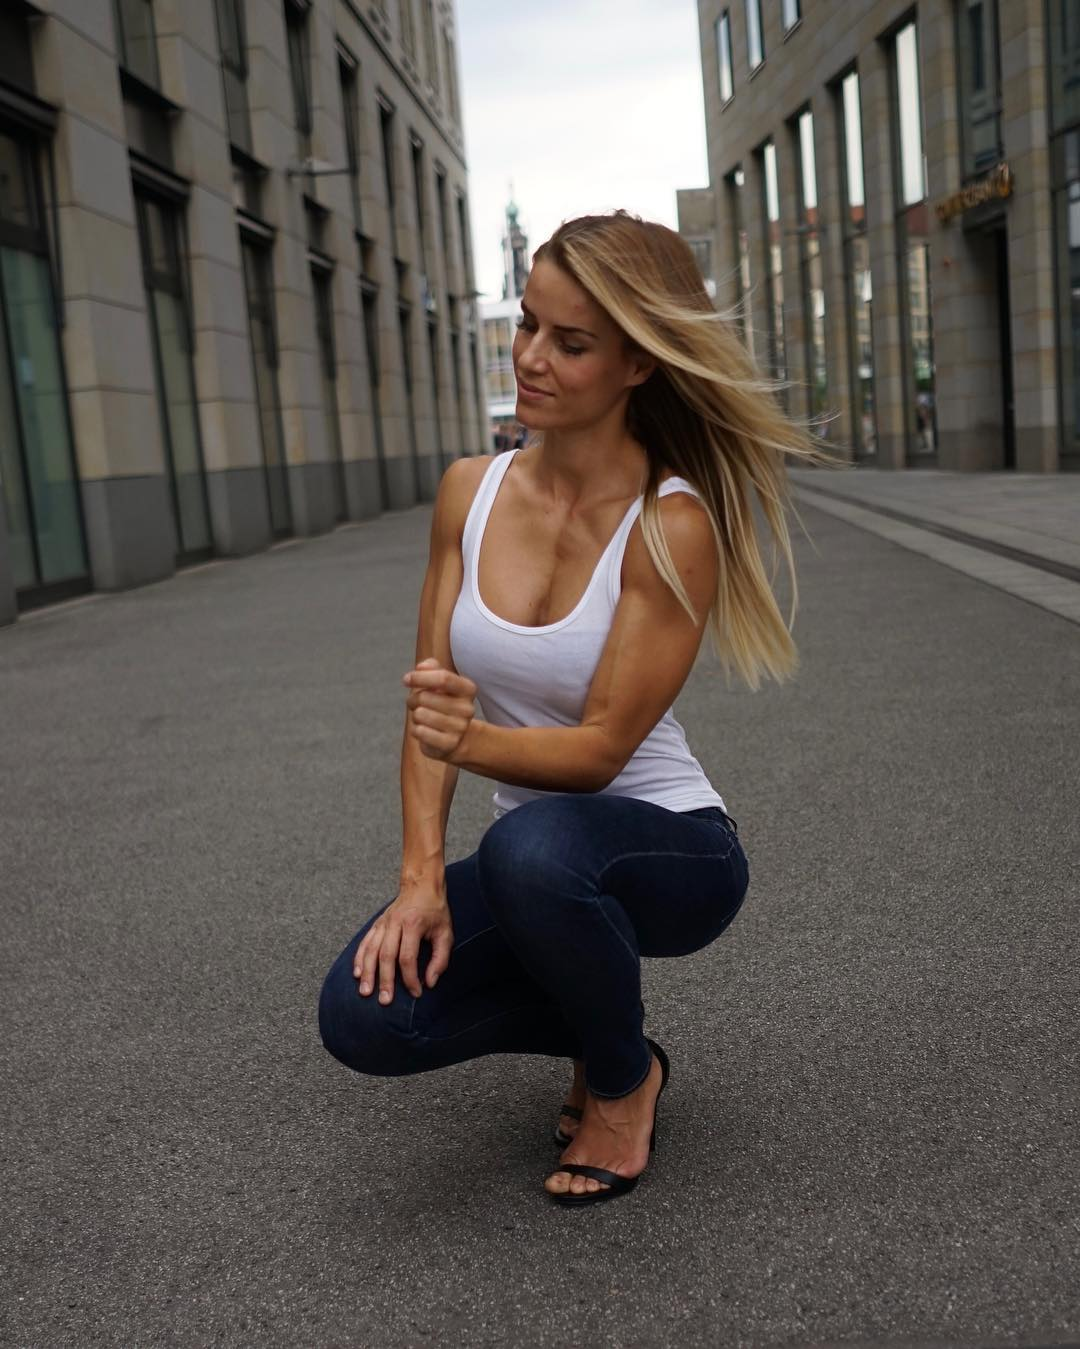 German Woman Of Incredible Beauty Has To Choose Between Being A Policewoman Or A Model